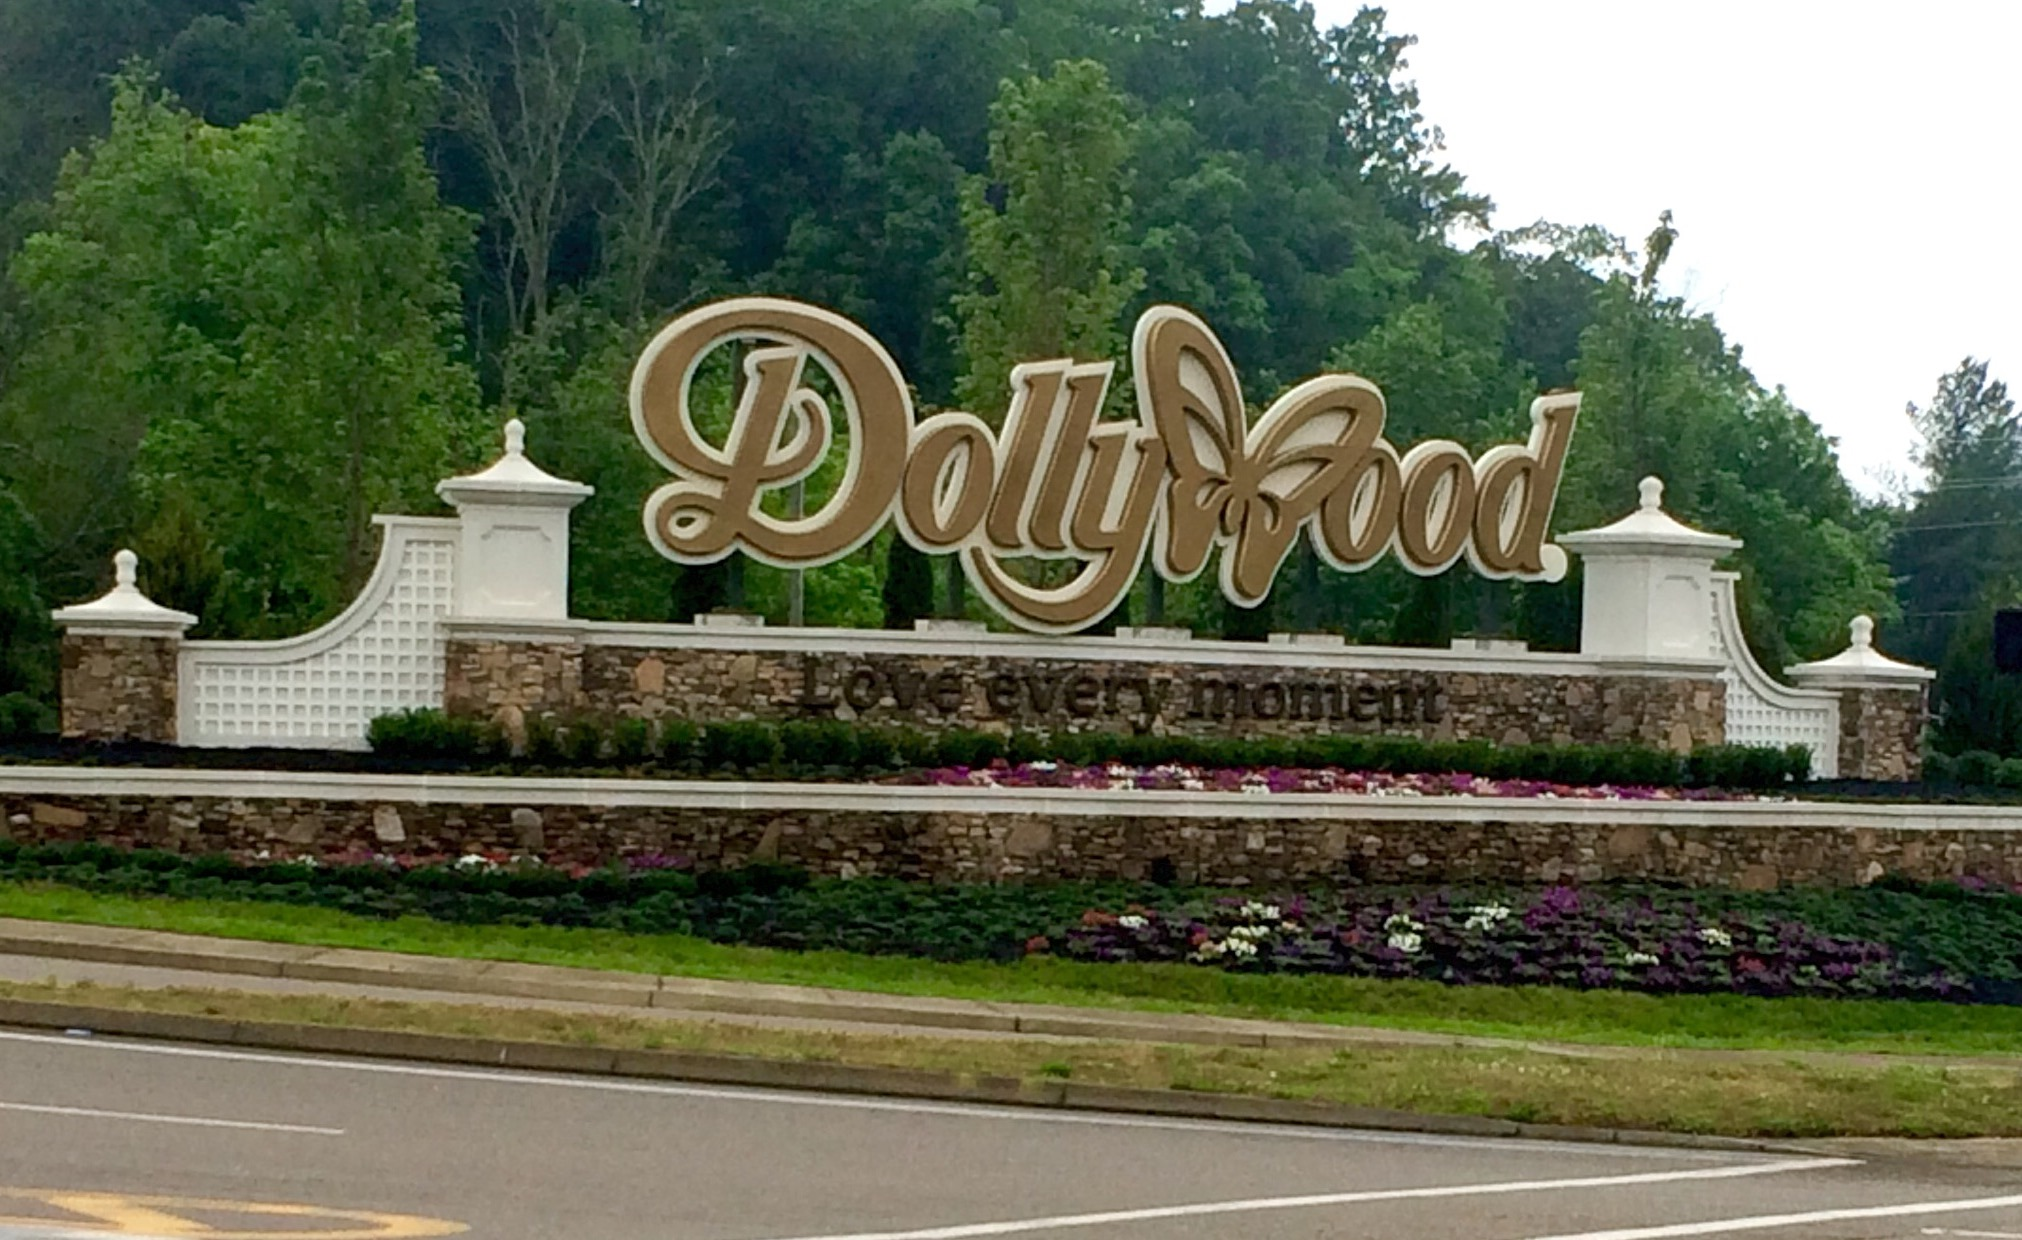 cut-foam-dimensional-letters-main-id-sign-dollywood-pigeon-forge-tn.jpg